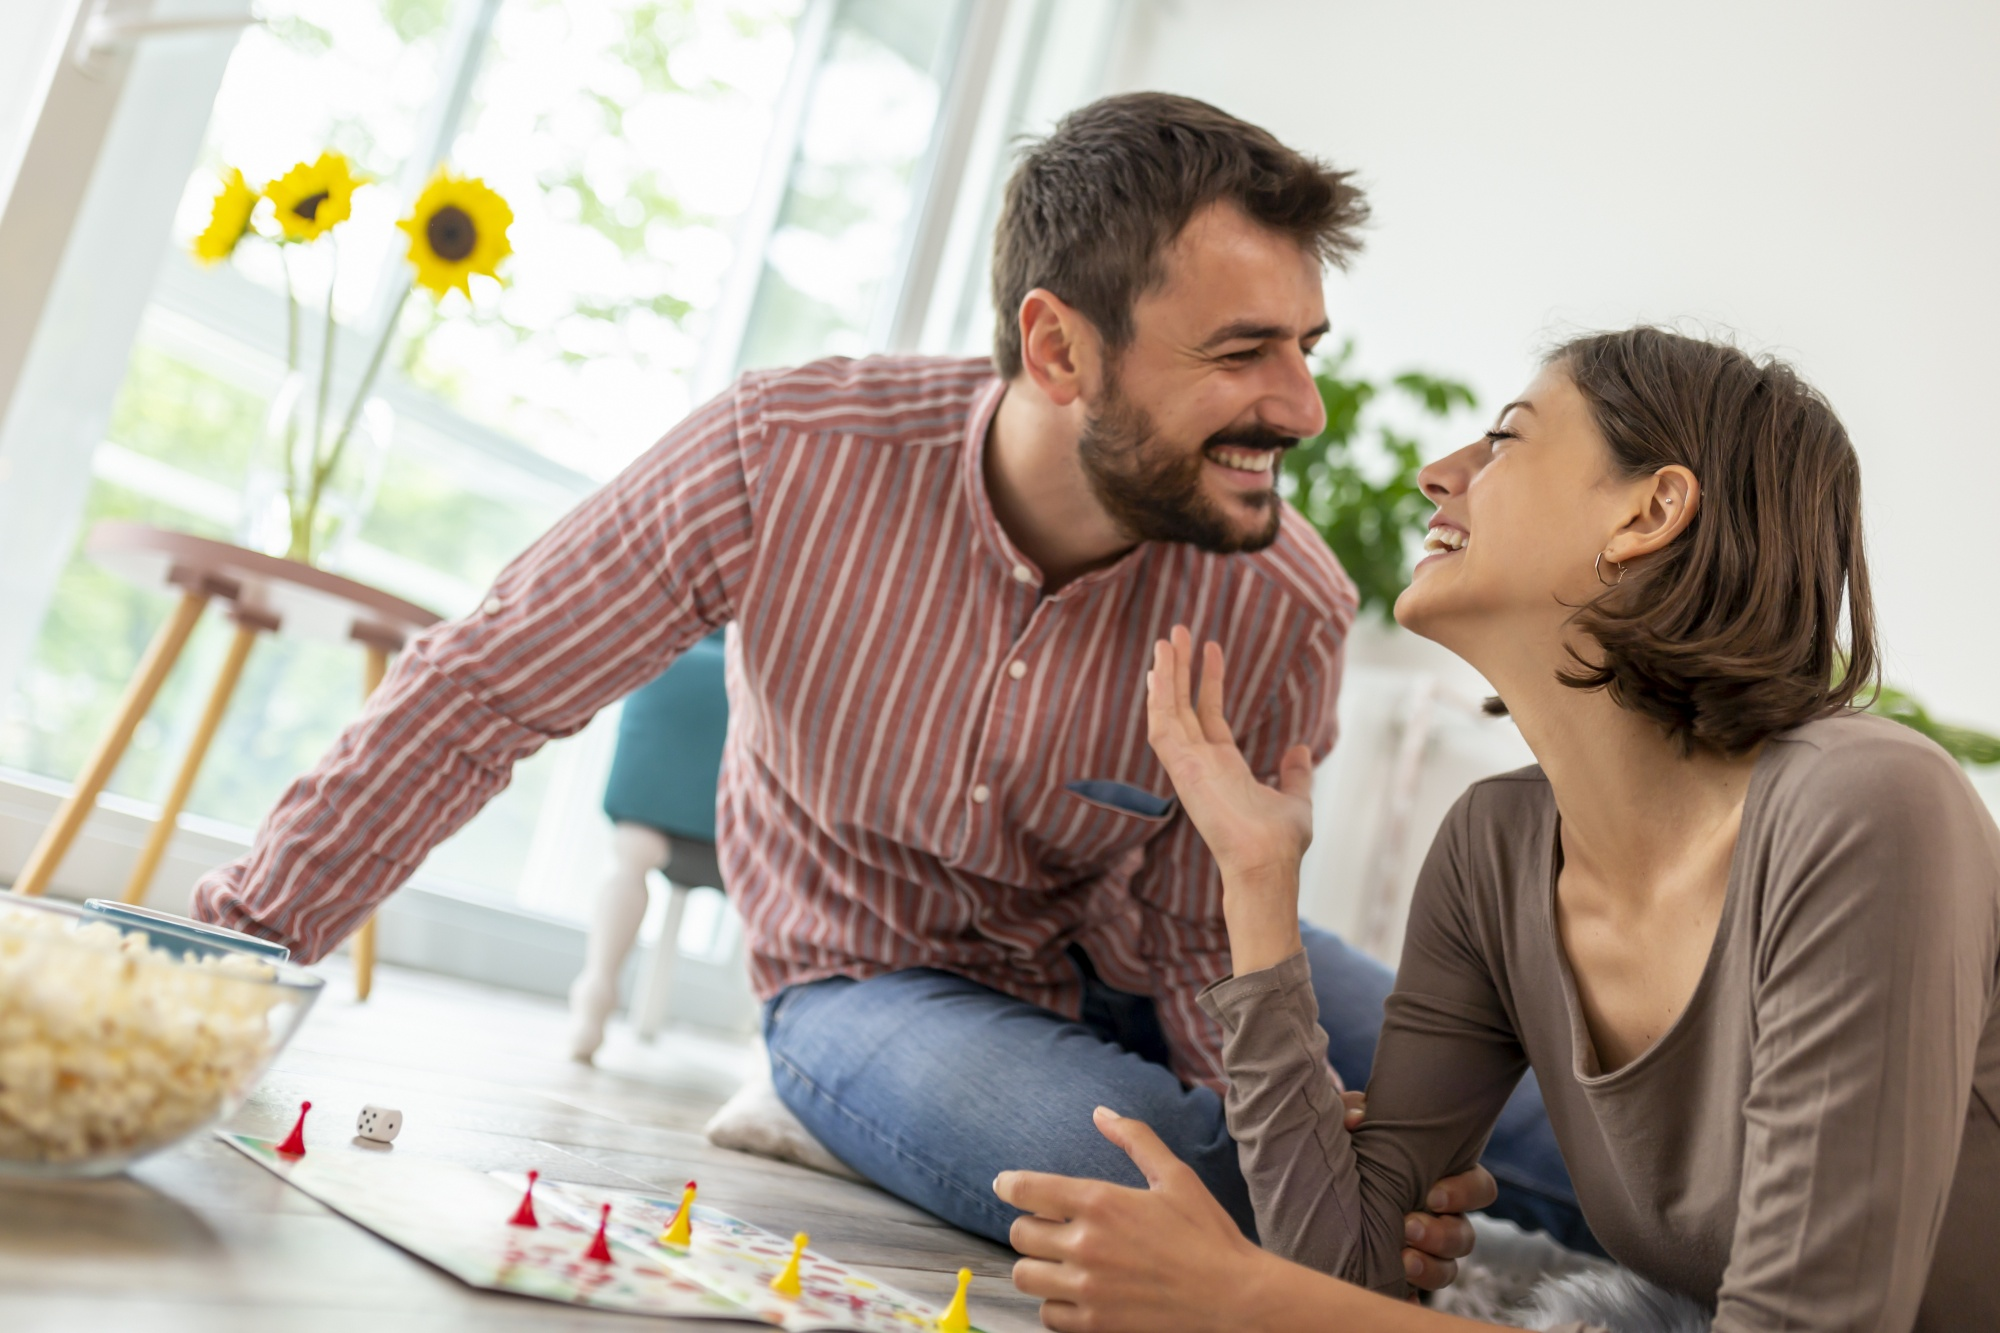 board games for date night, couple laughing having fun playing board game